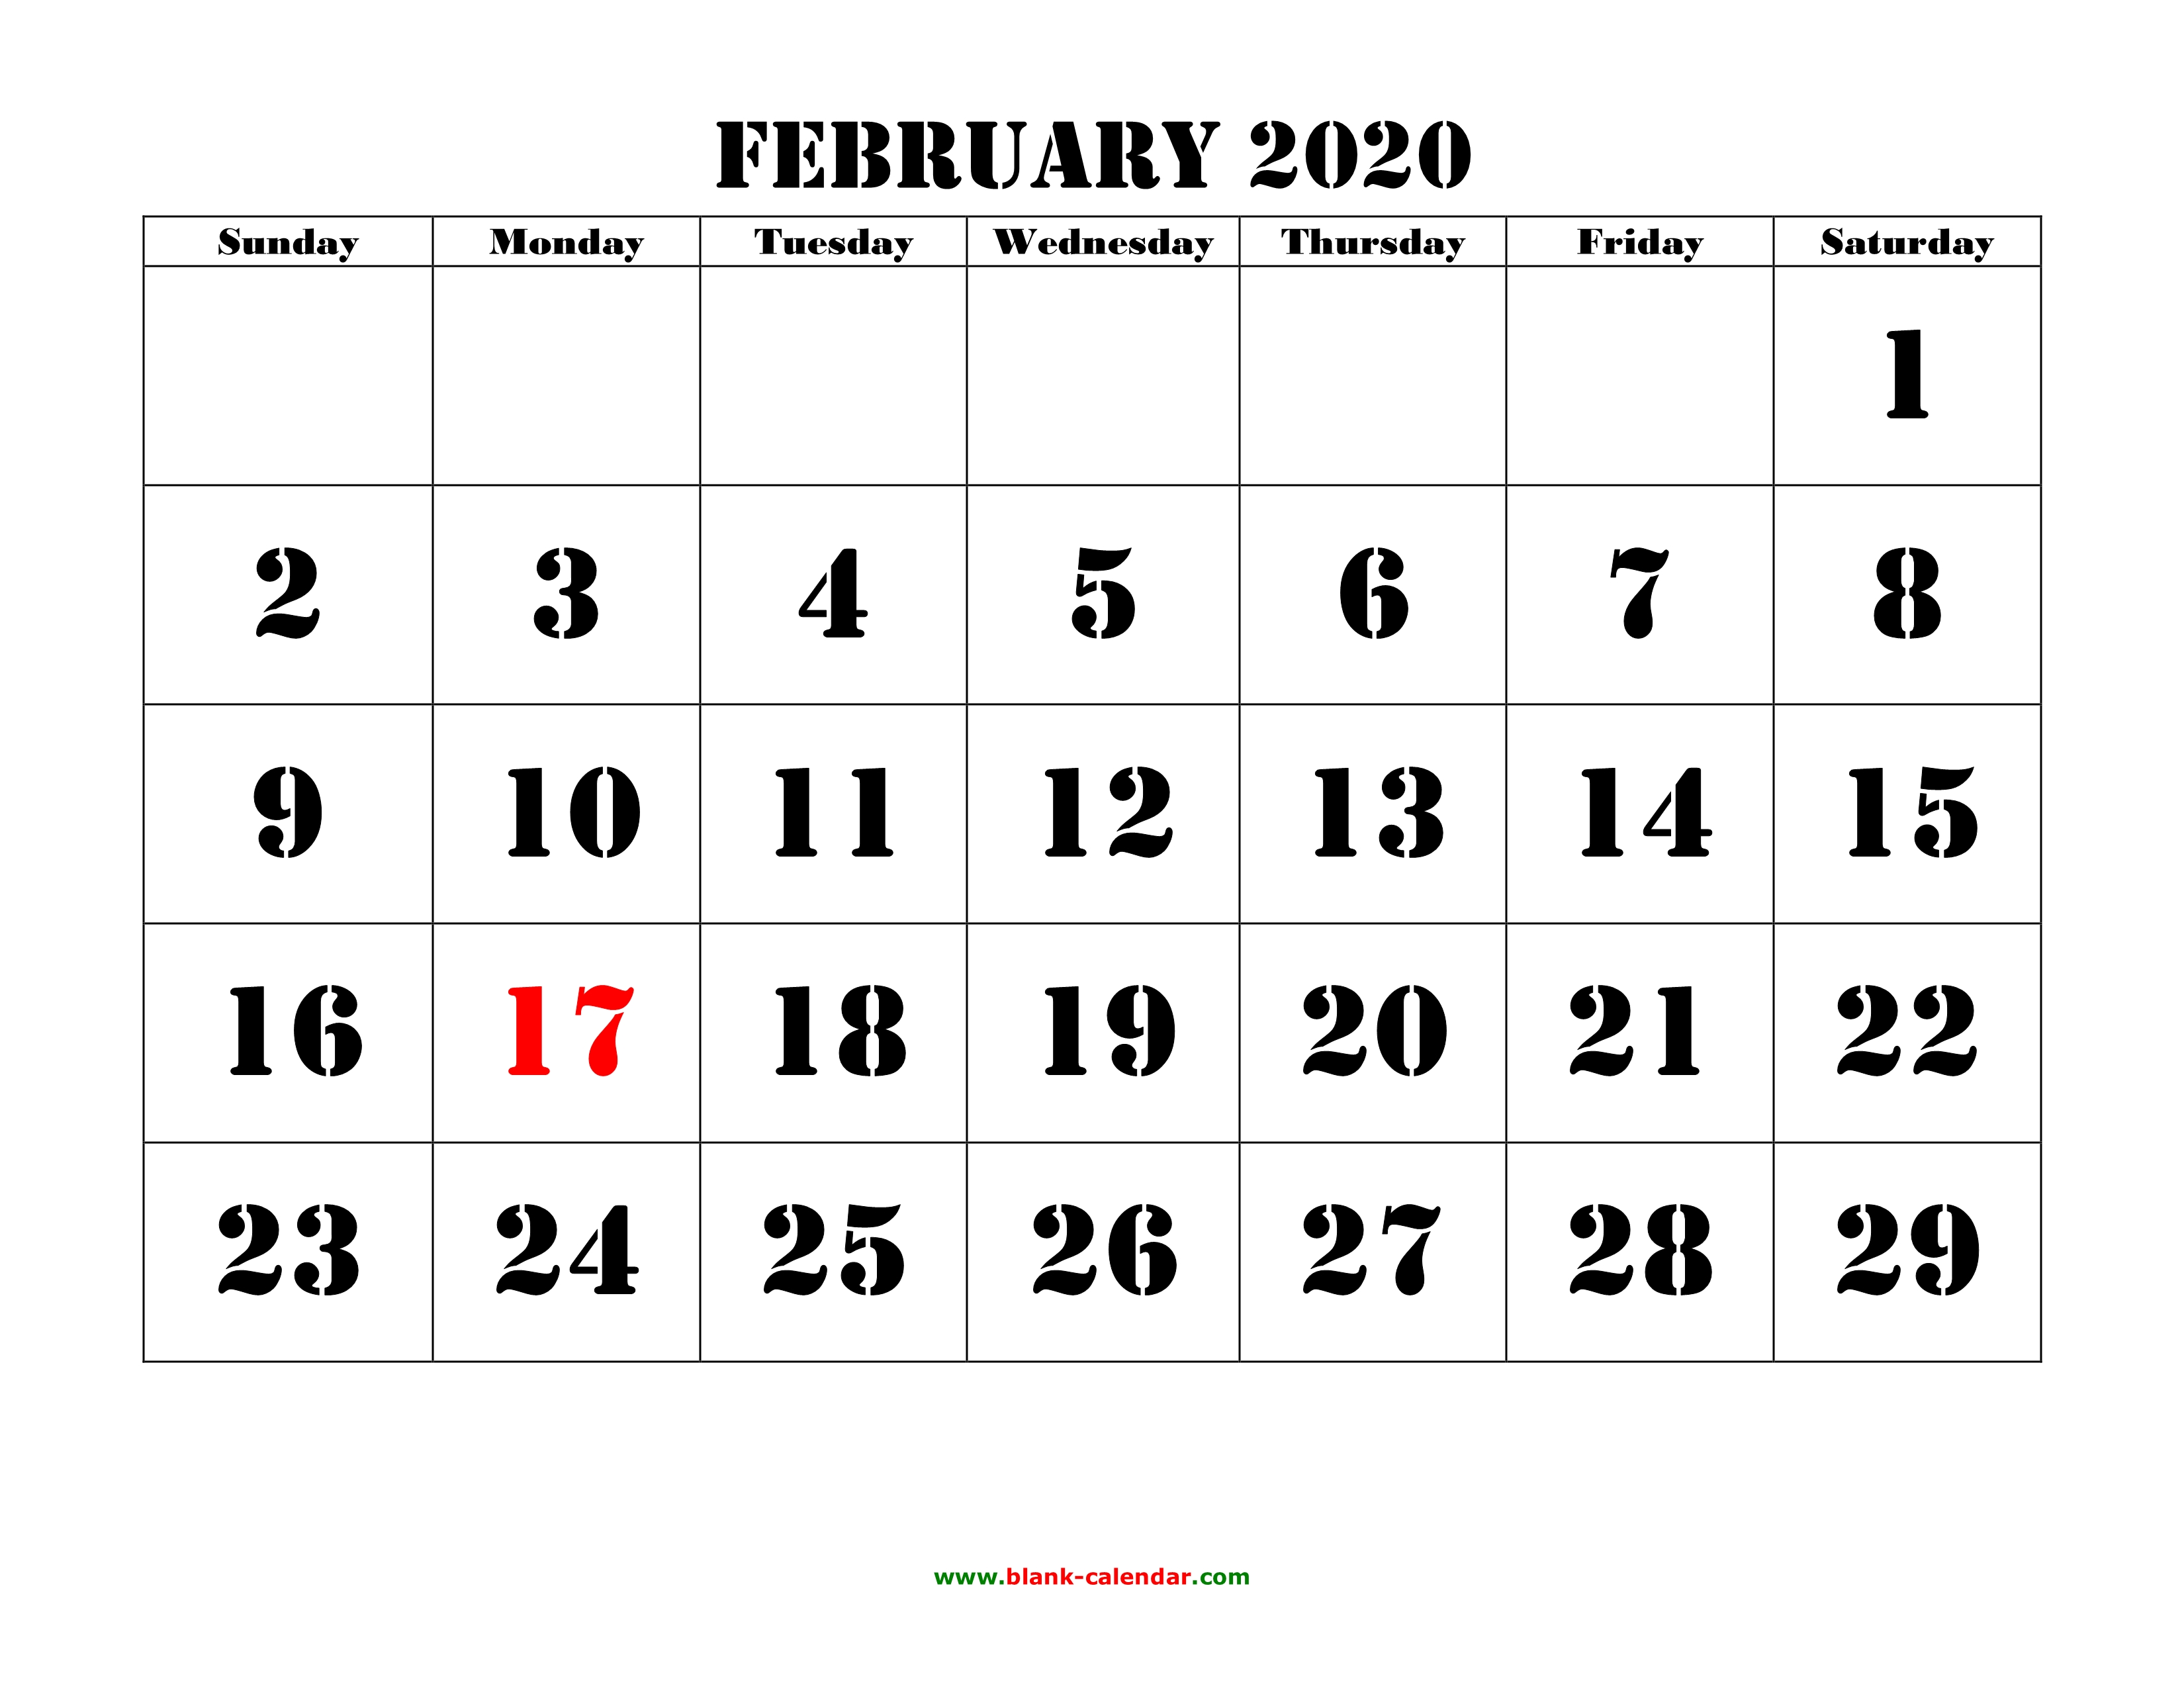 February 2020 Print-A Calendarcom Free Download Printable February 2020 Calendar, large font design